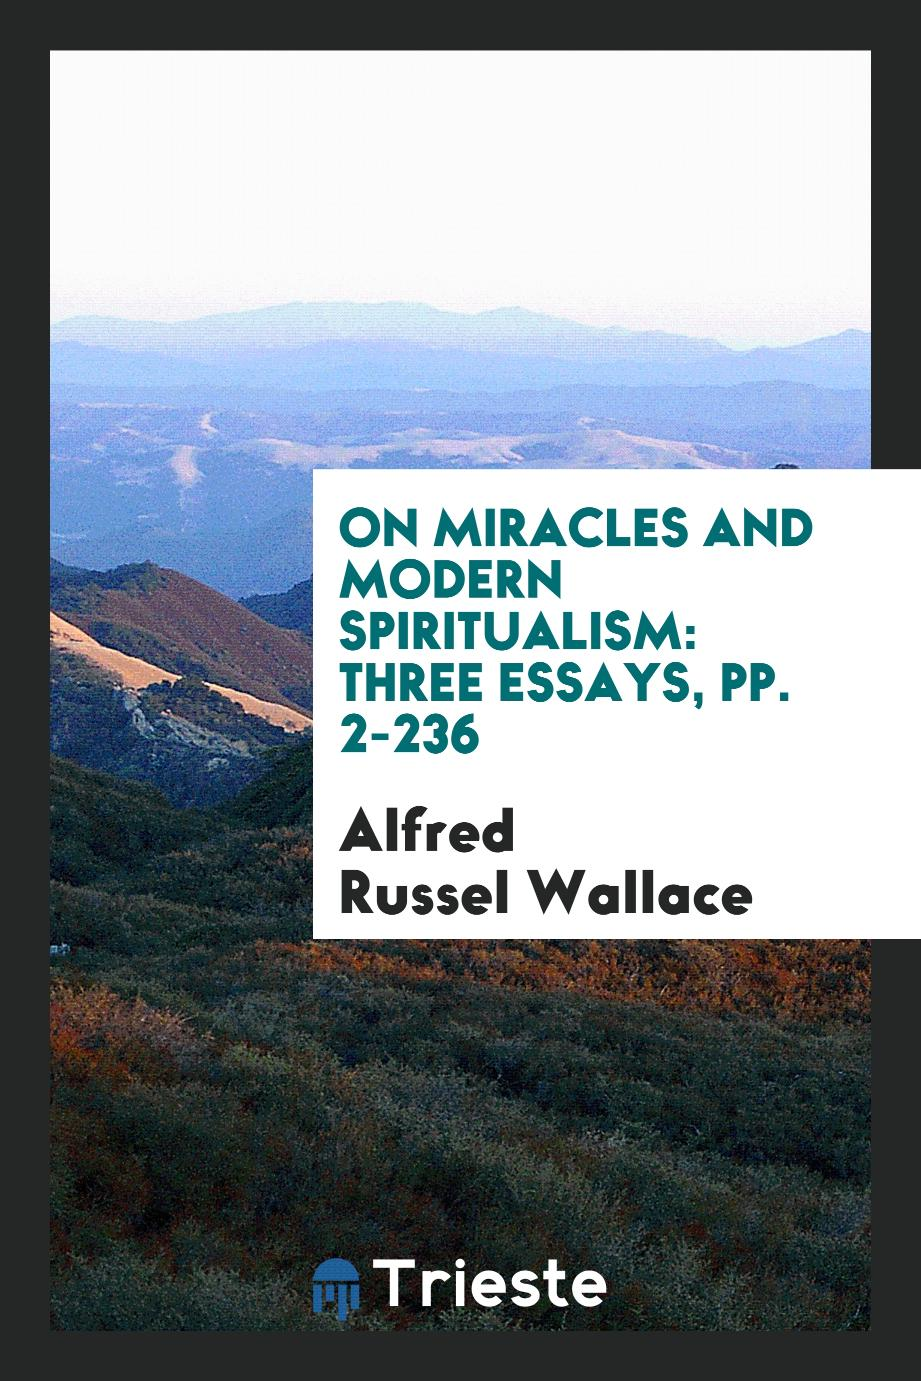 On Miracles and Modern Spiritualism: Three Essays, pp. 2-236